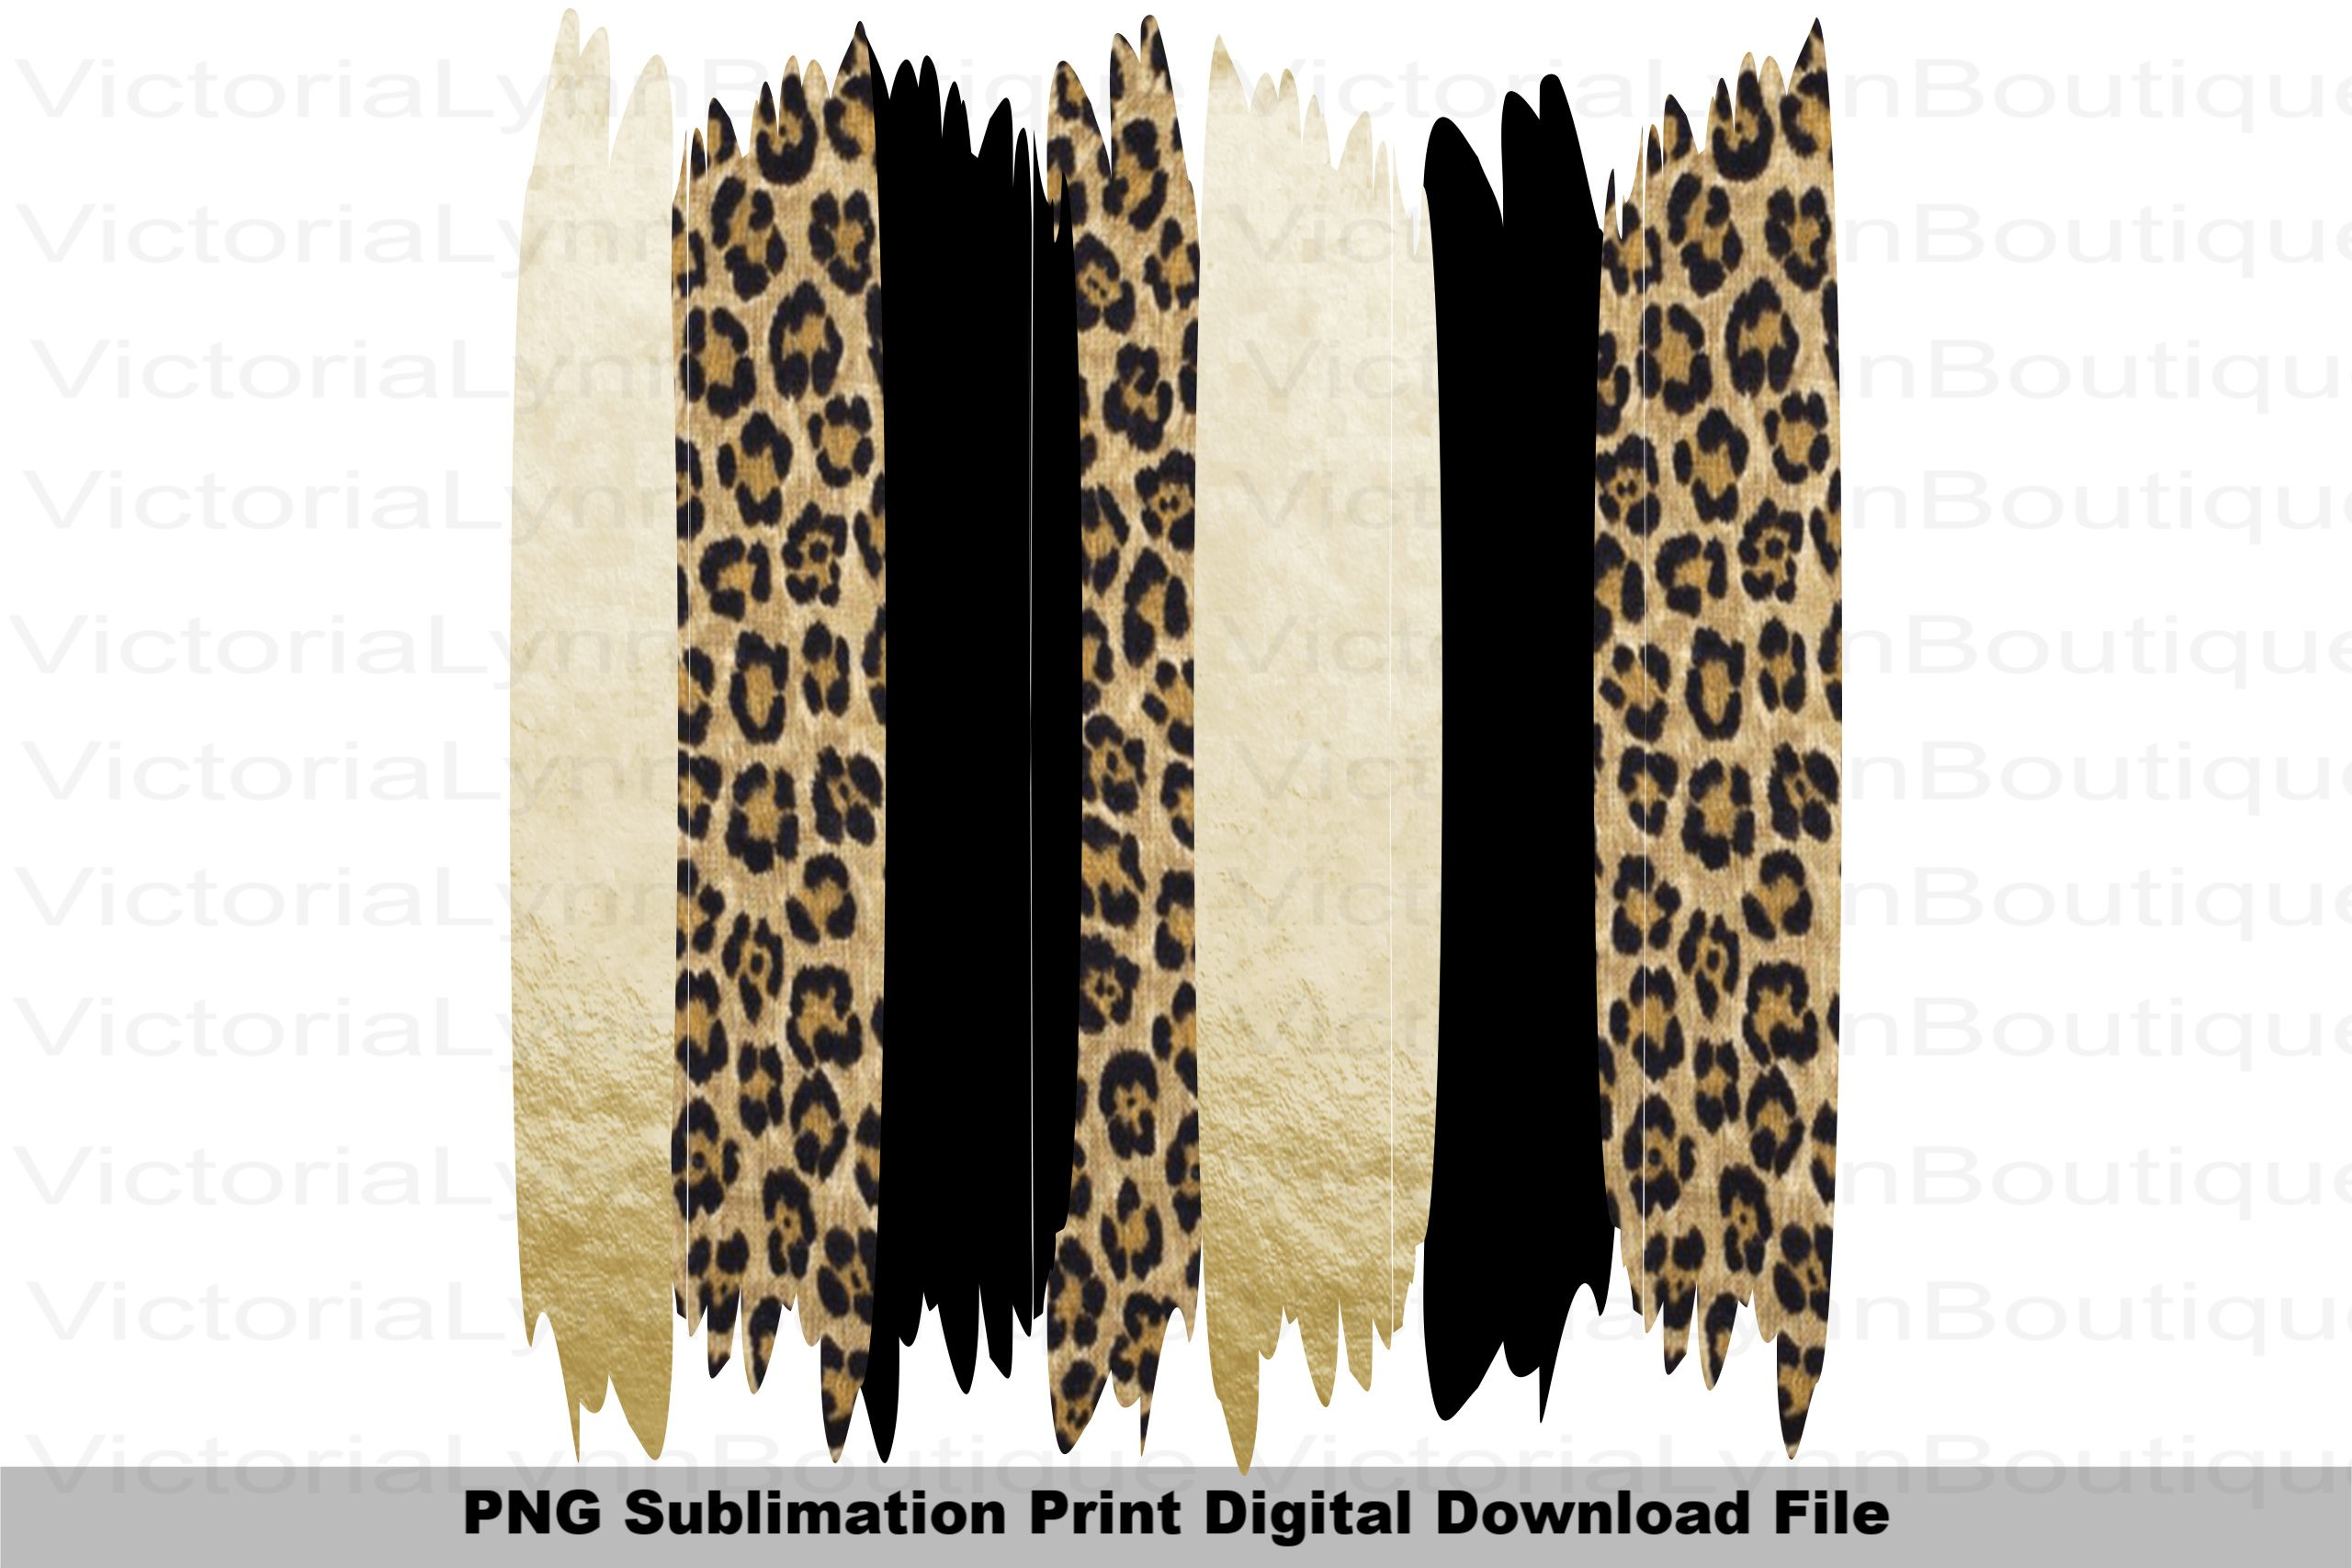 Brushstrokes Gold And Leopard Png File For Sublimation Etsy In 2021 Brush Strokes Sublimation Printing Cheetah Print Wallpaper